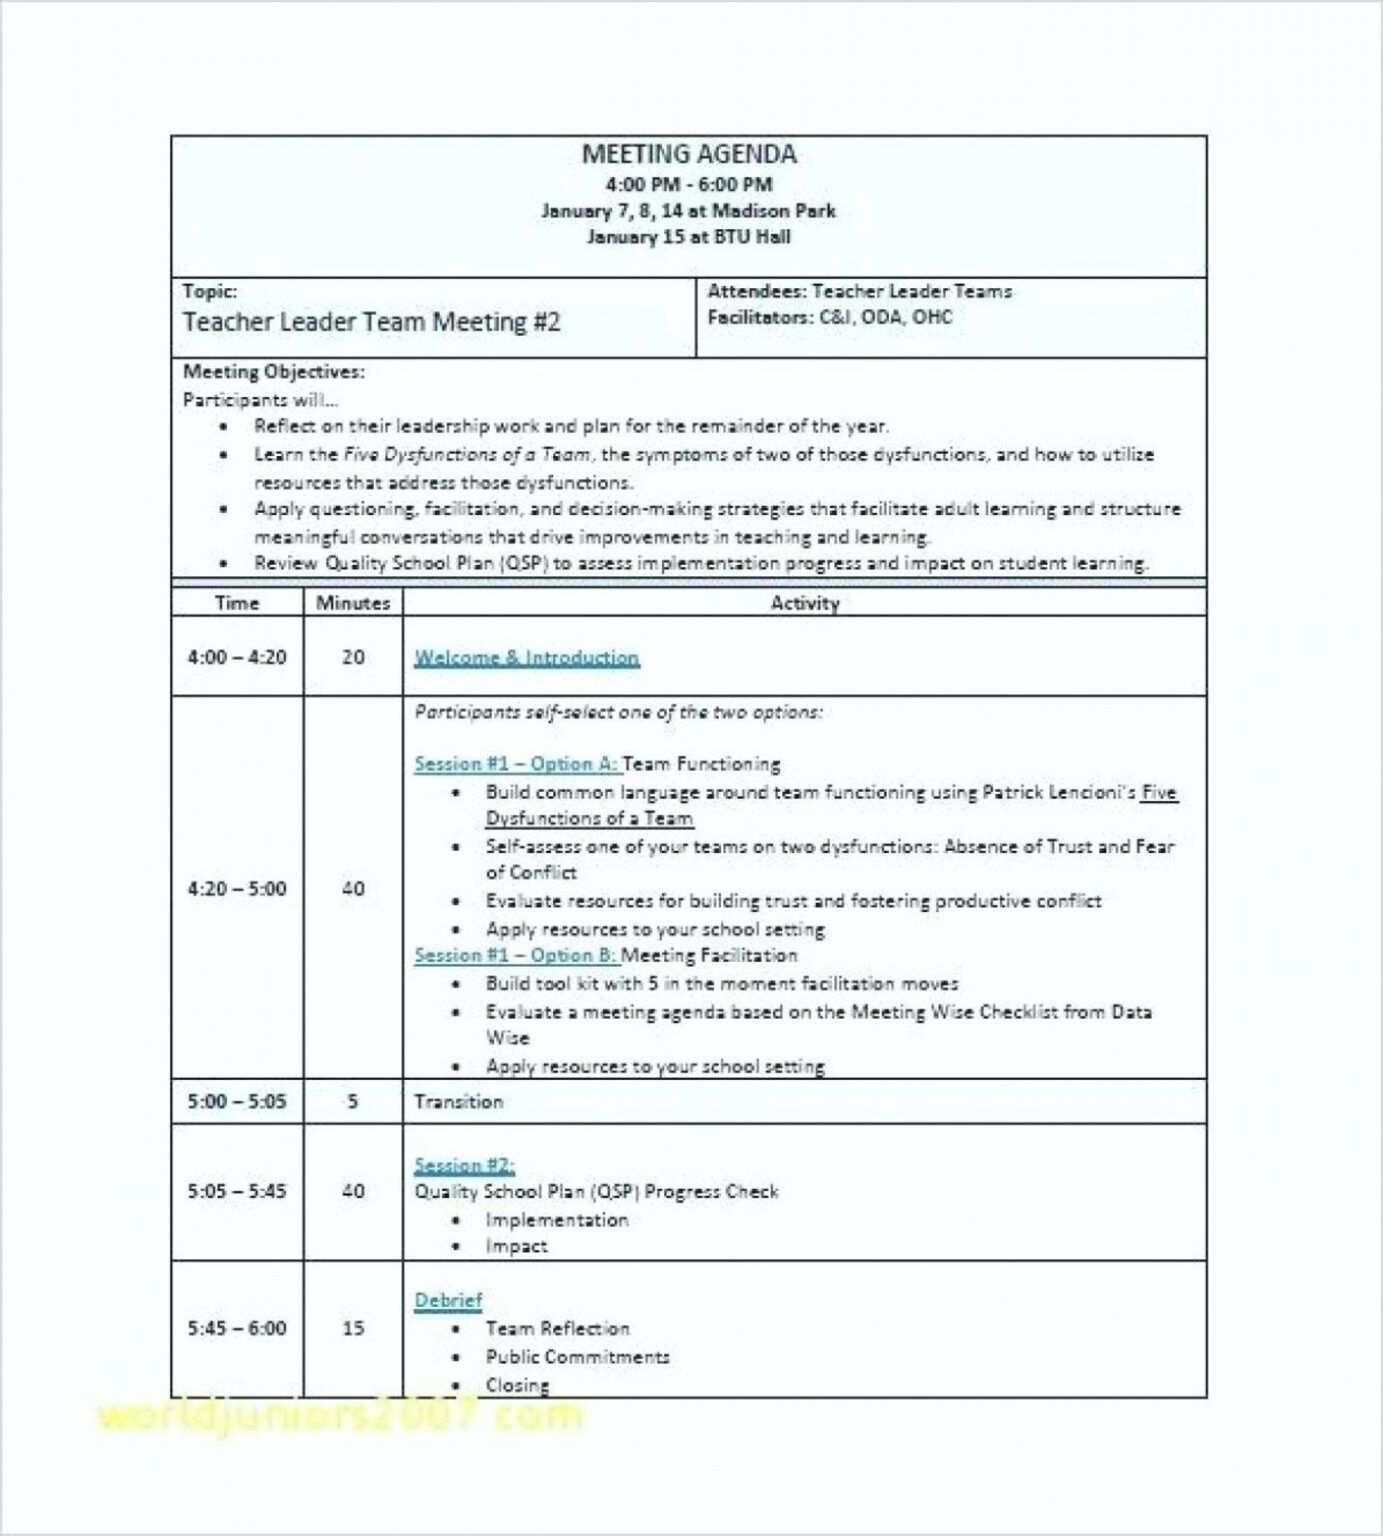 12 13 Word Agenda Vorlage Fur Meetings Ithacar Within Event Agenda Template Word Meeting Notes Template Meeting Agenda Template Meeting Agenda